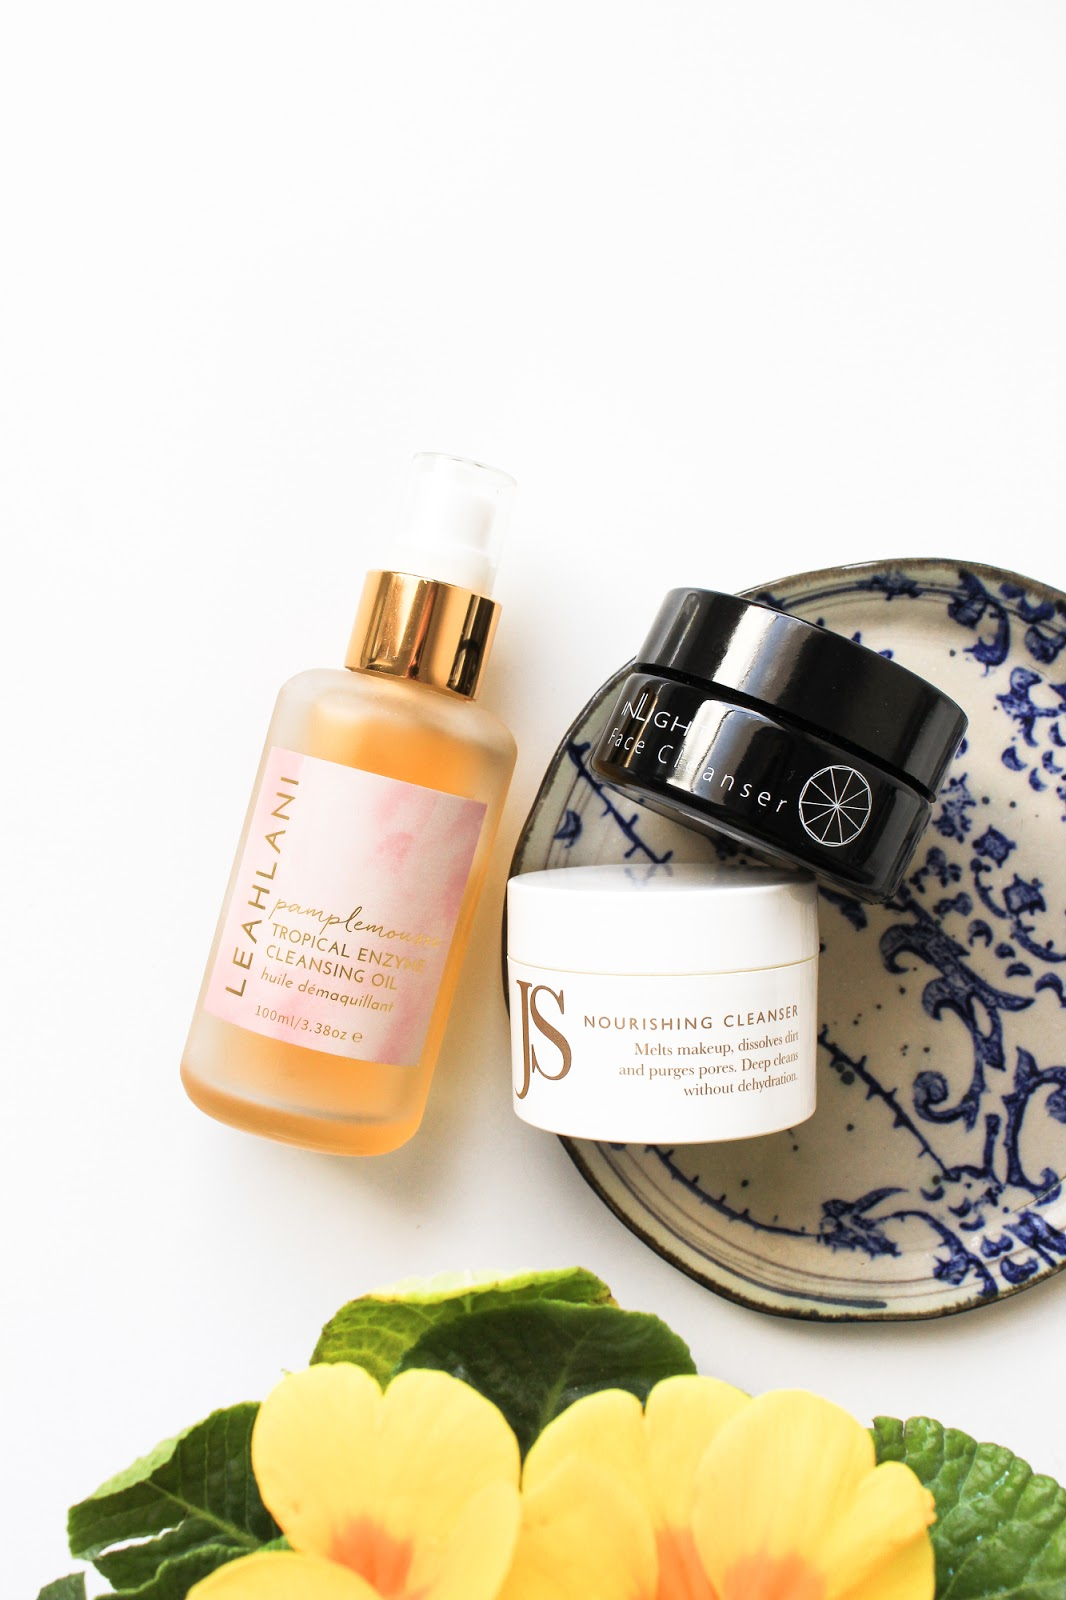 Leahlani Pamplemousse Tropical Enzyme Cleansing Oil, Inlight Beauty Face Cleanser, Jane Scrivner Nourishing Cleanser